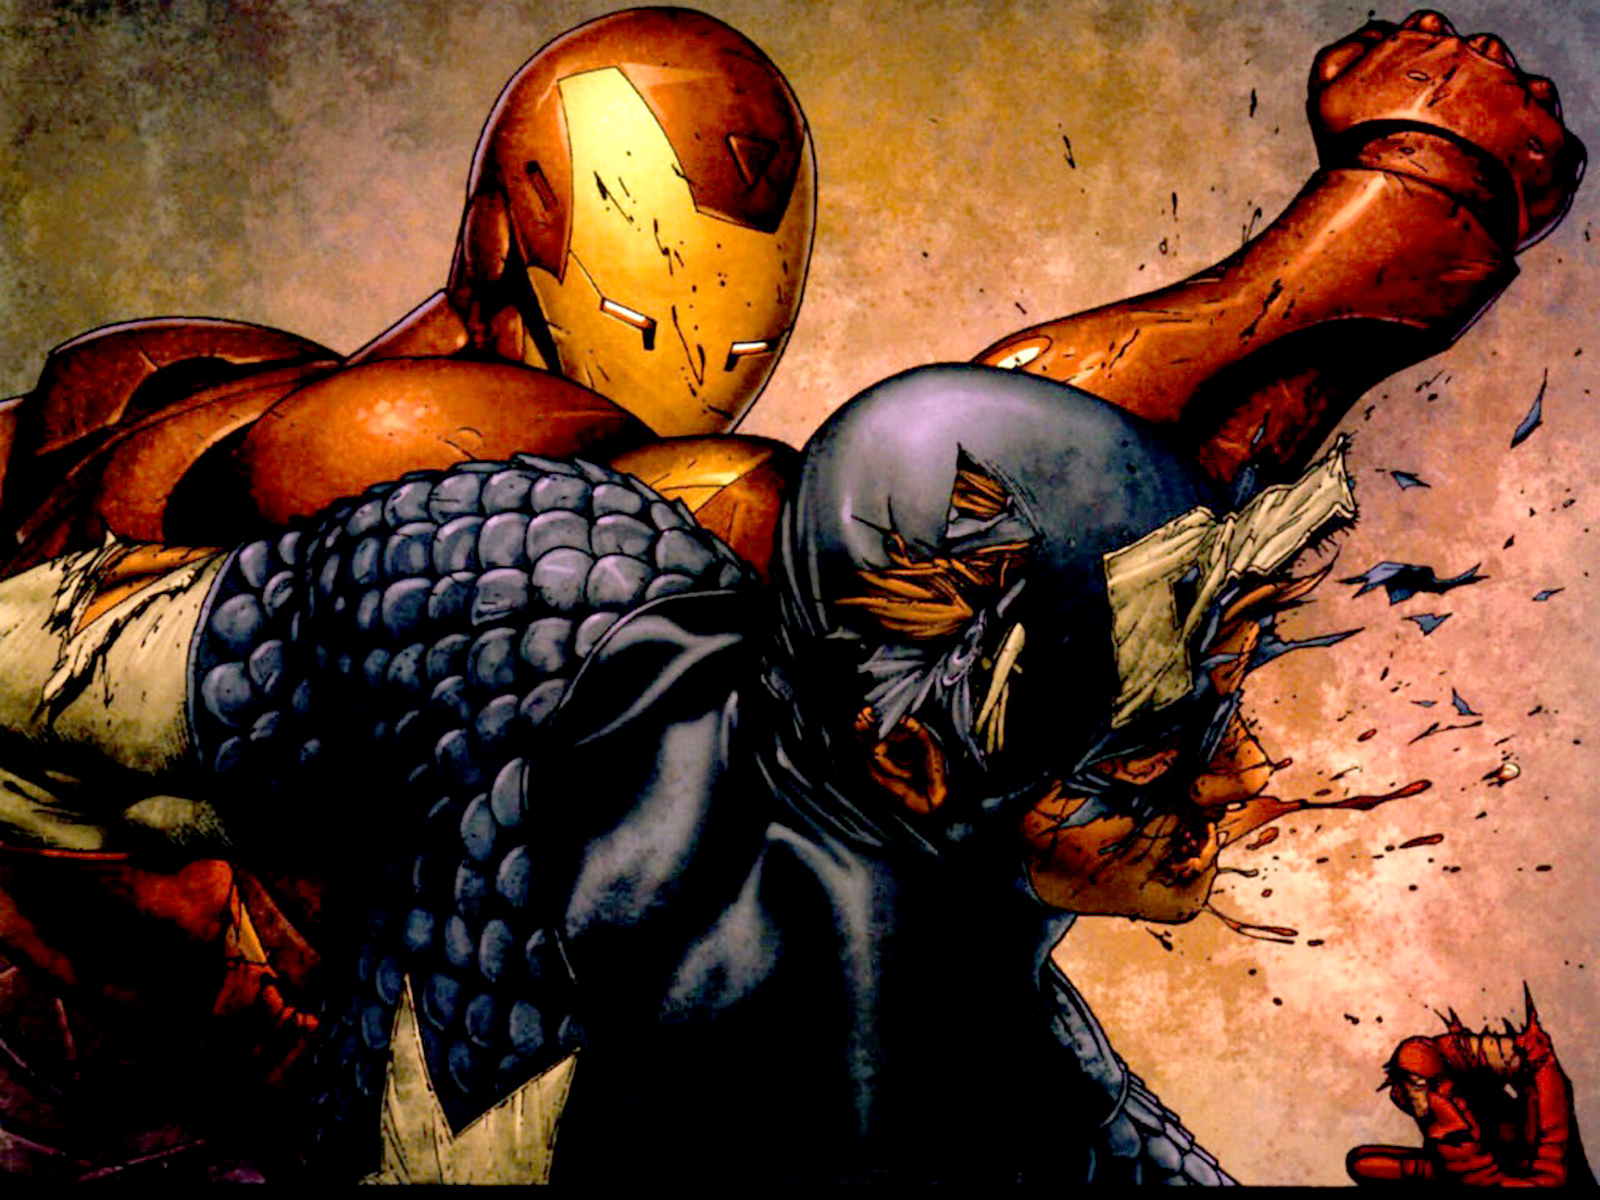 Iron Man Vs Captain America Comics Hd Wallpaper Cartoon Wallpapers